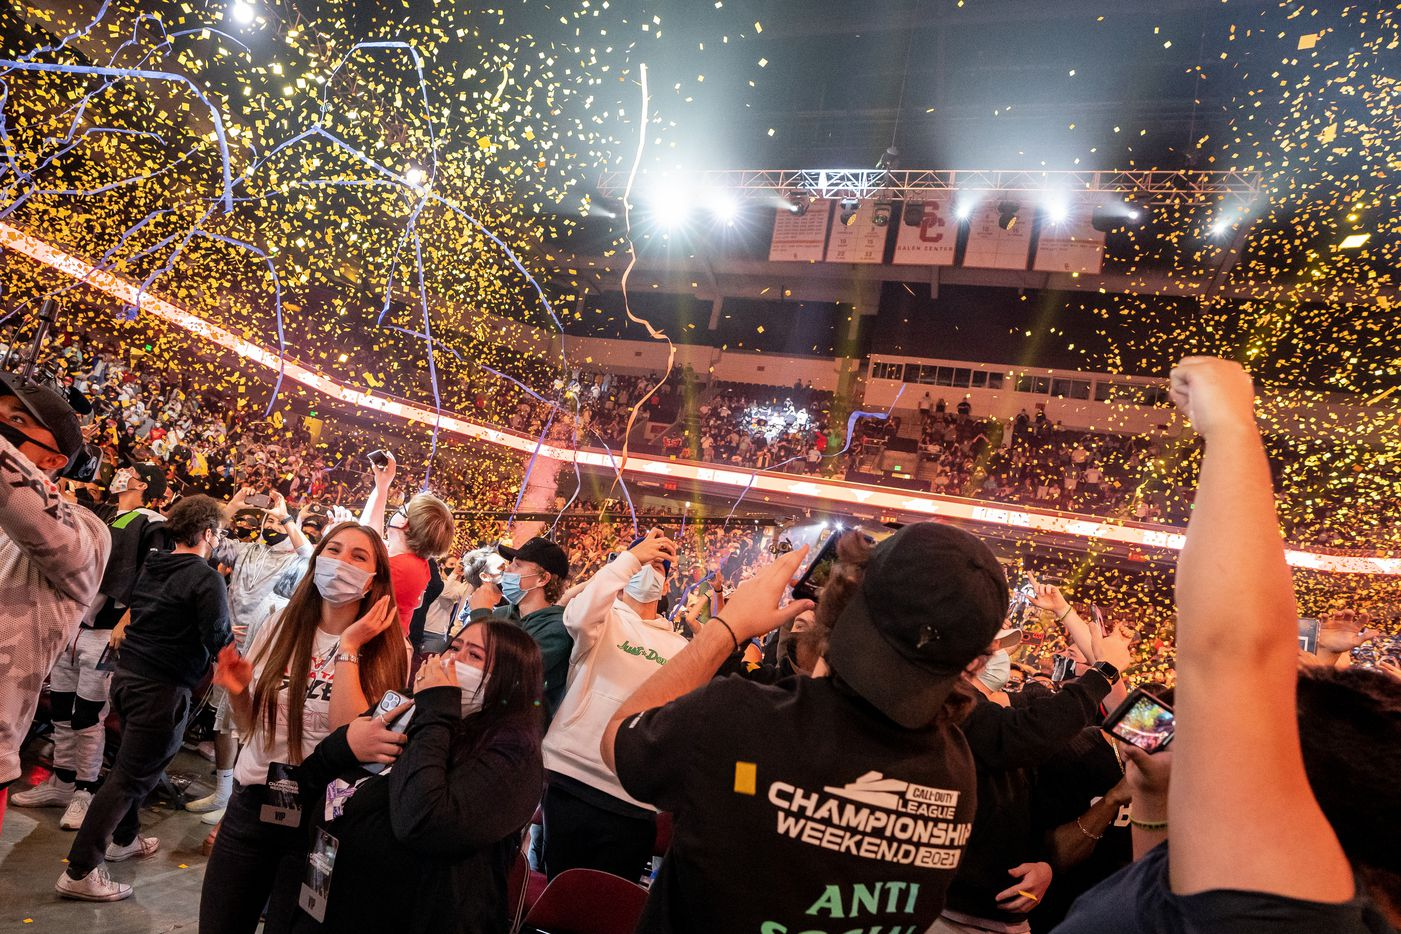 Atlanta FaZe fans celebrate their team's victory during Call of Duty league championship at the Galen Center on Sunday, August 22, 2021 in Los Angeles, California. The Atlanta FaZe beat the Toronto Ultra 5 - 3. (Justin L. Stewart/Special Contributor)